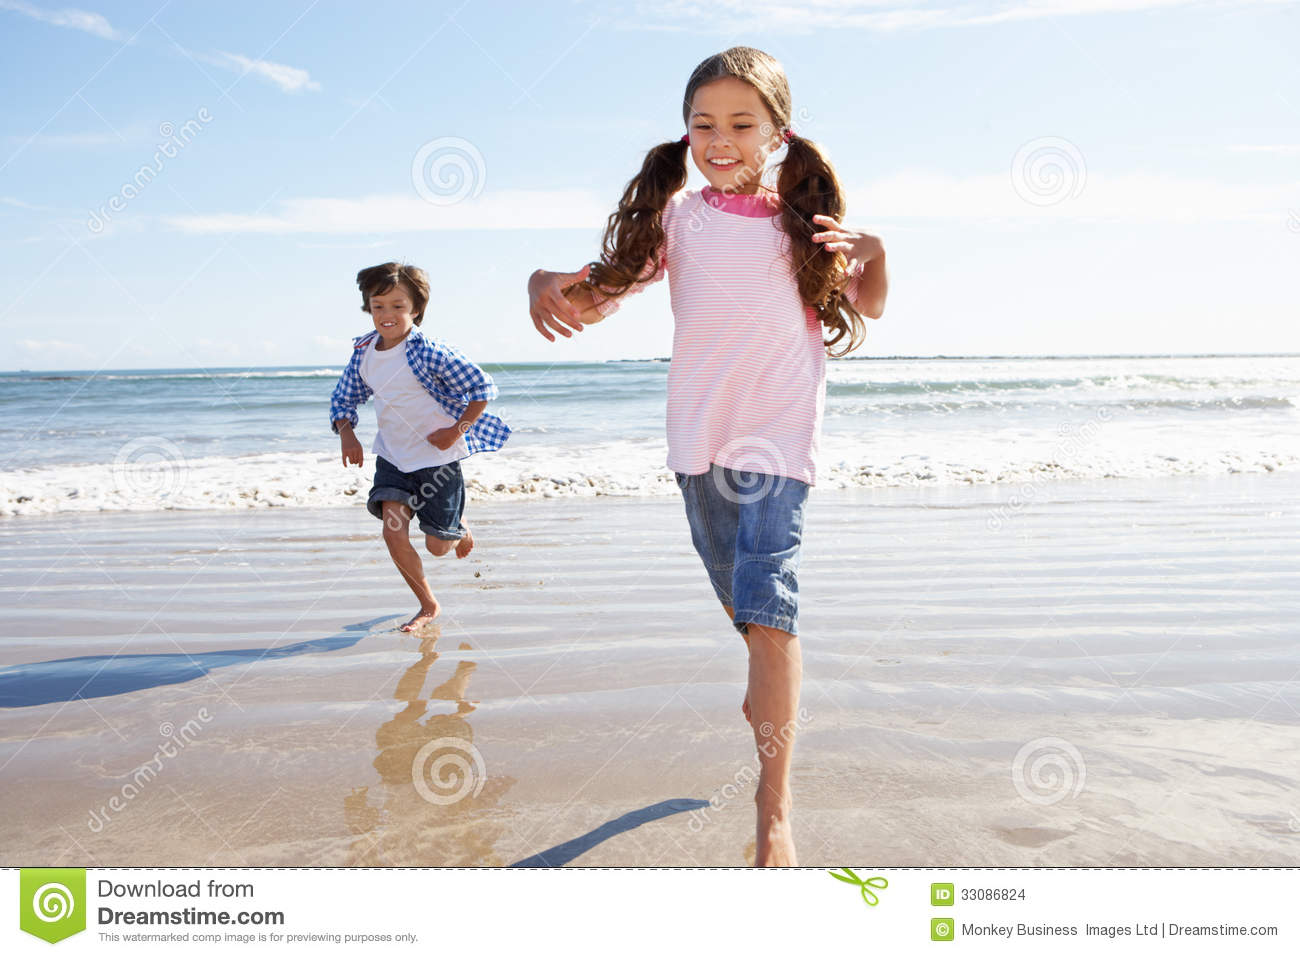 Child running away from home - Child Running Away From Home If Your Child Bolts Away From